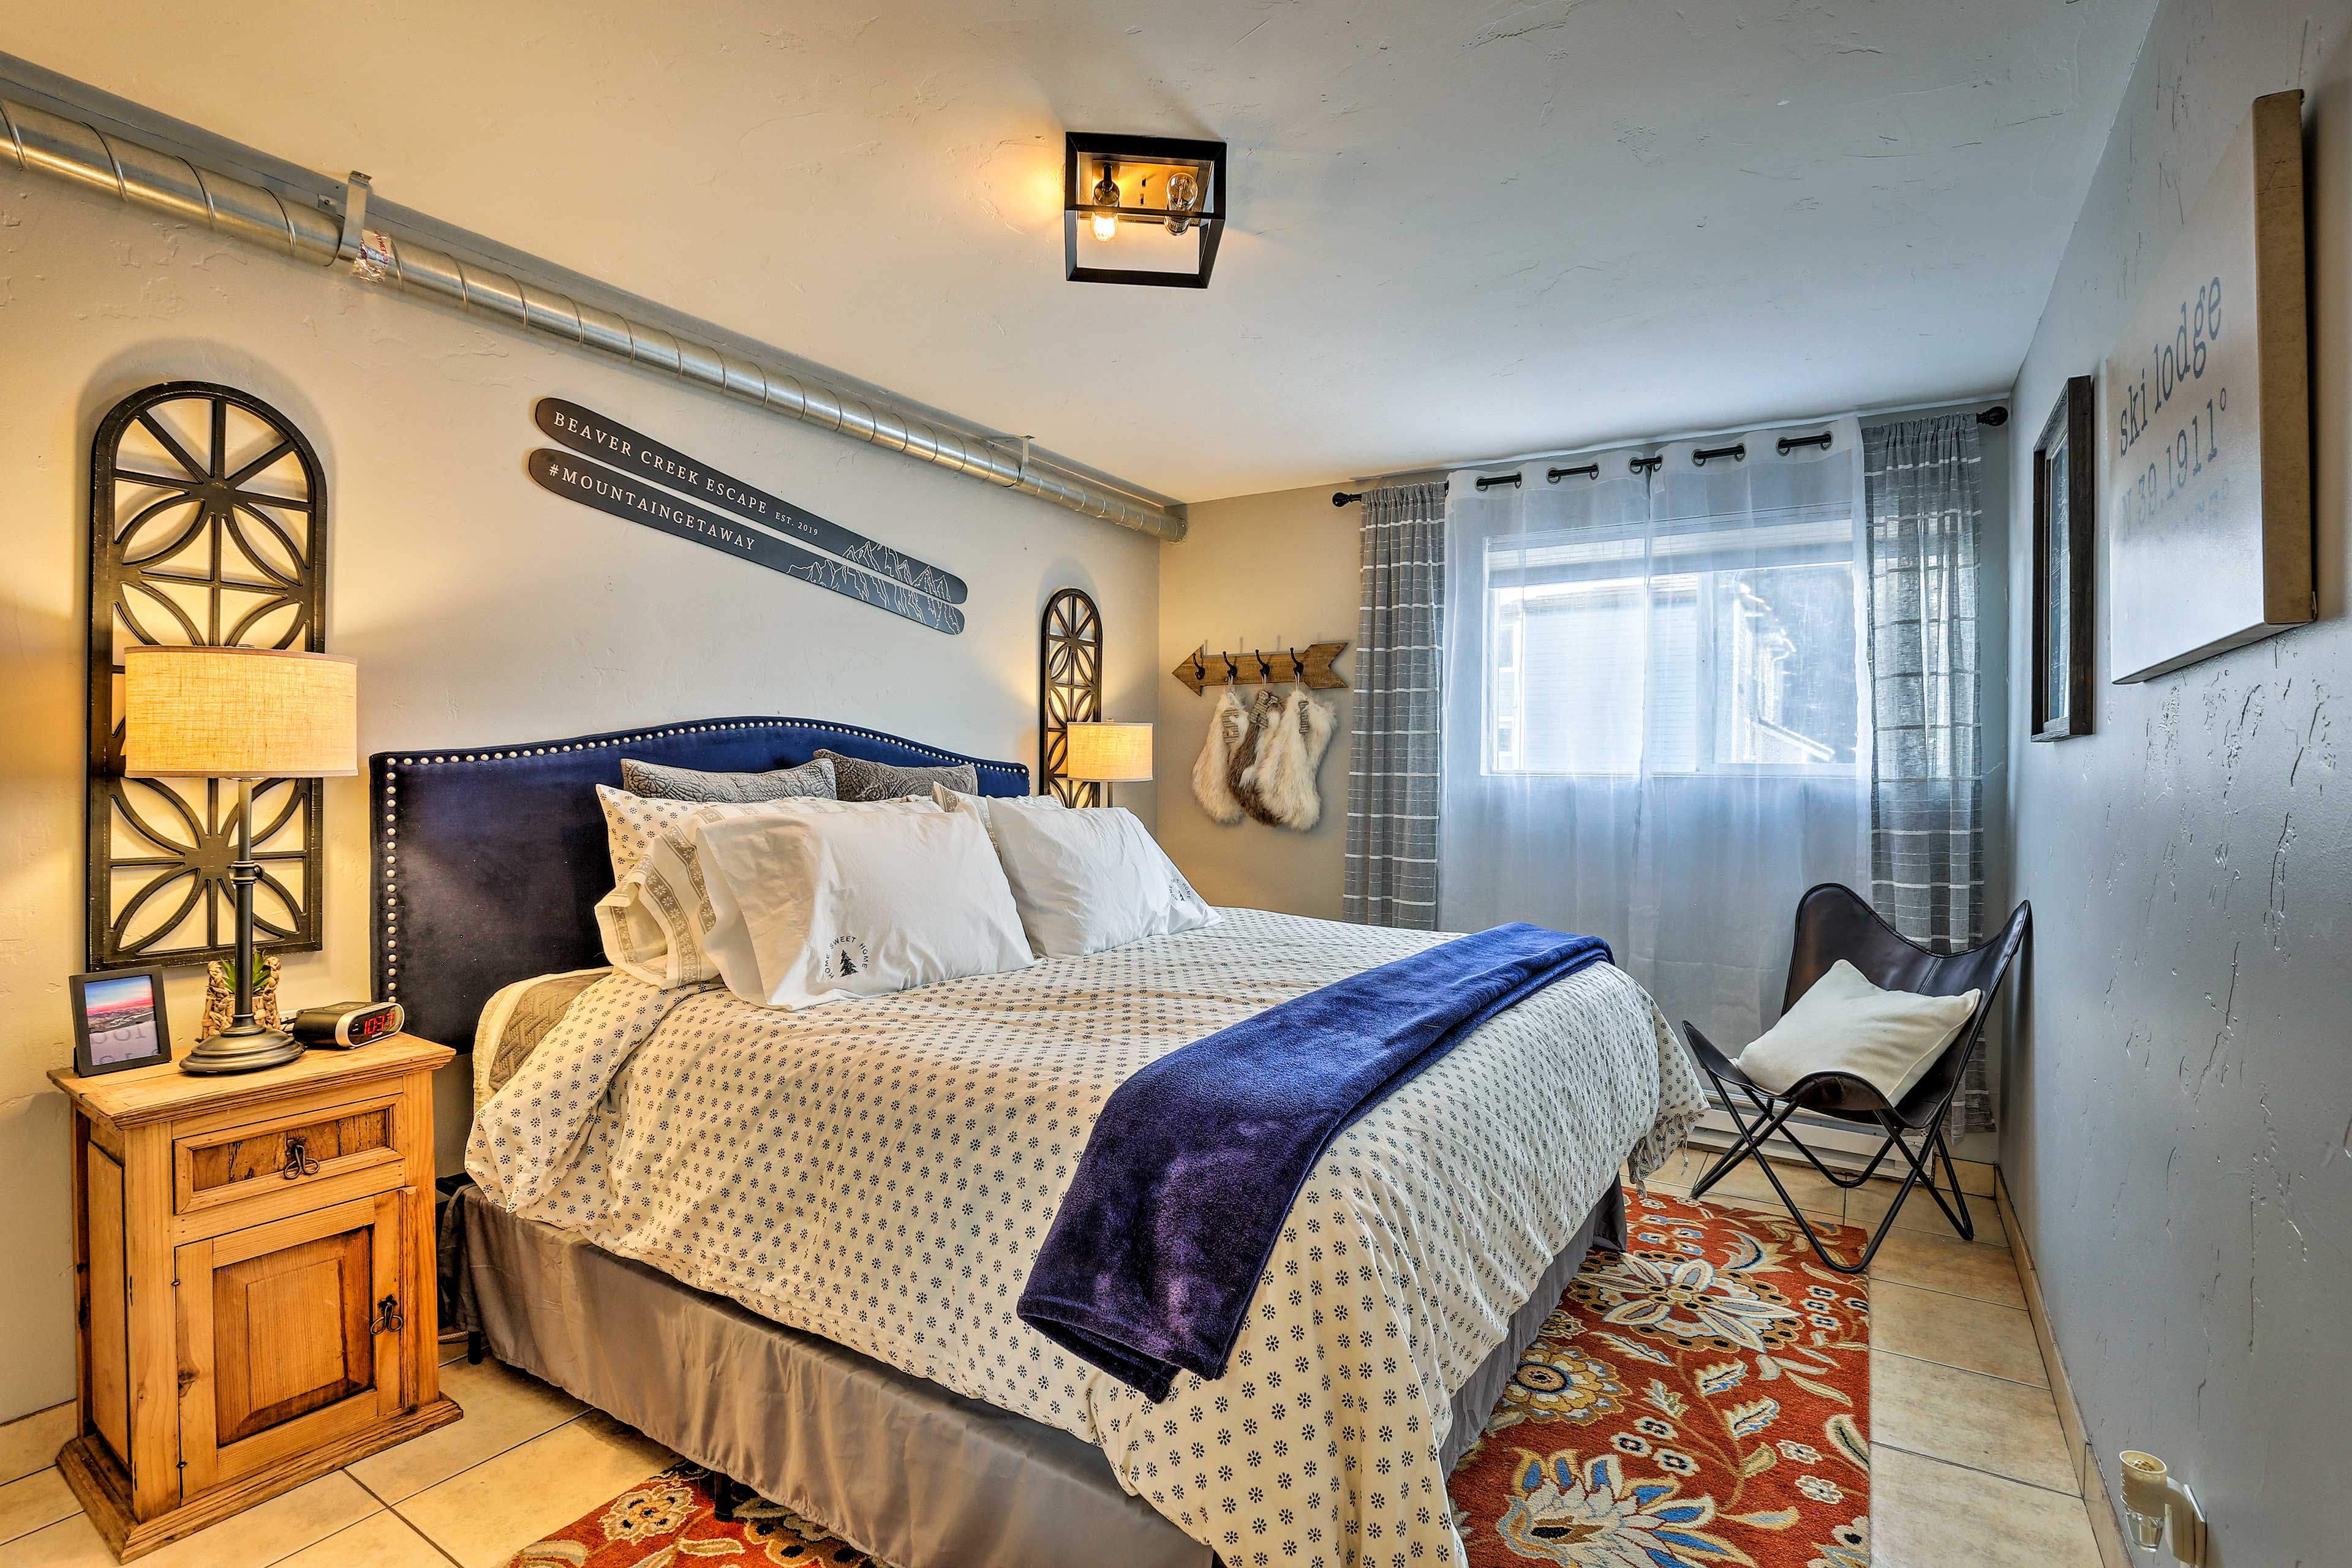 The master bedrooms boasts a king bed.